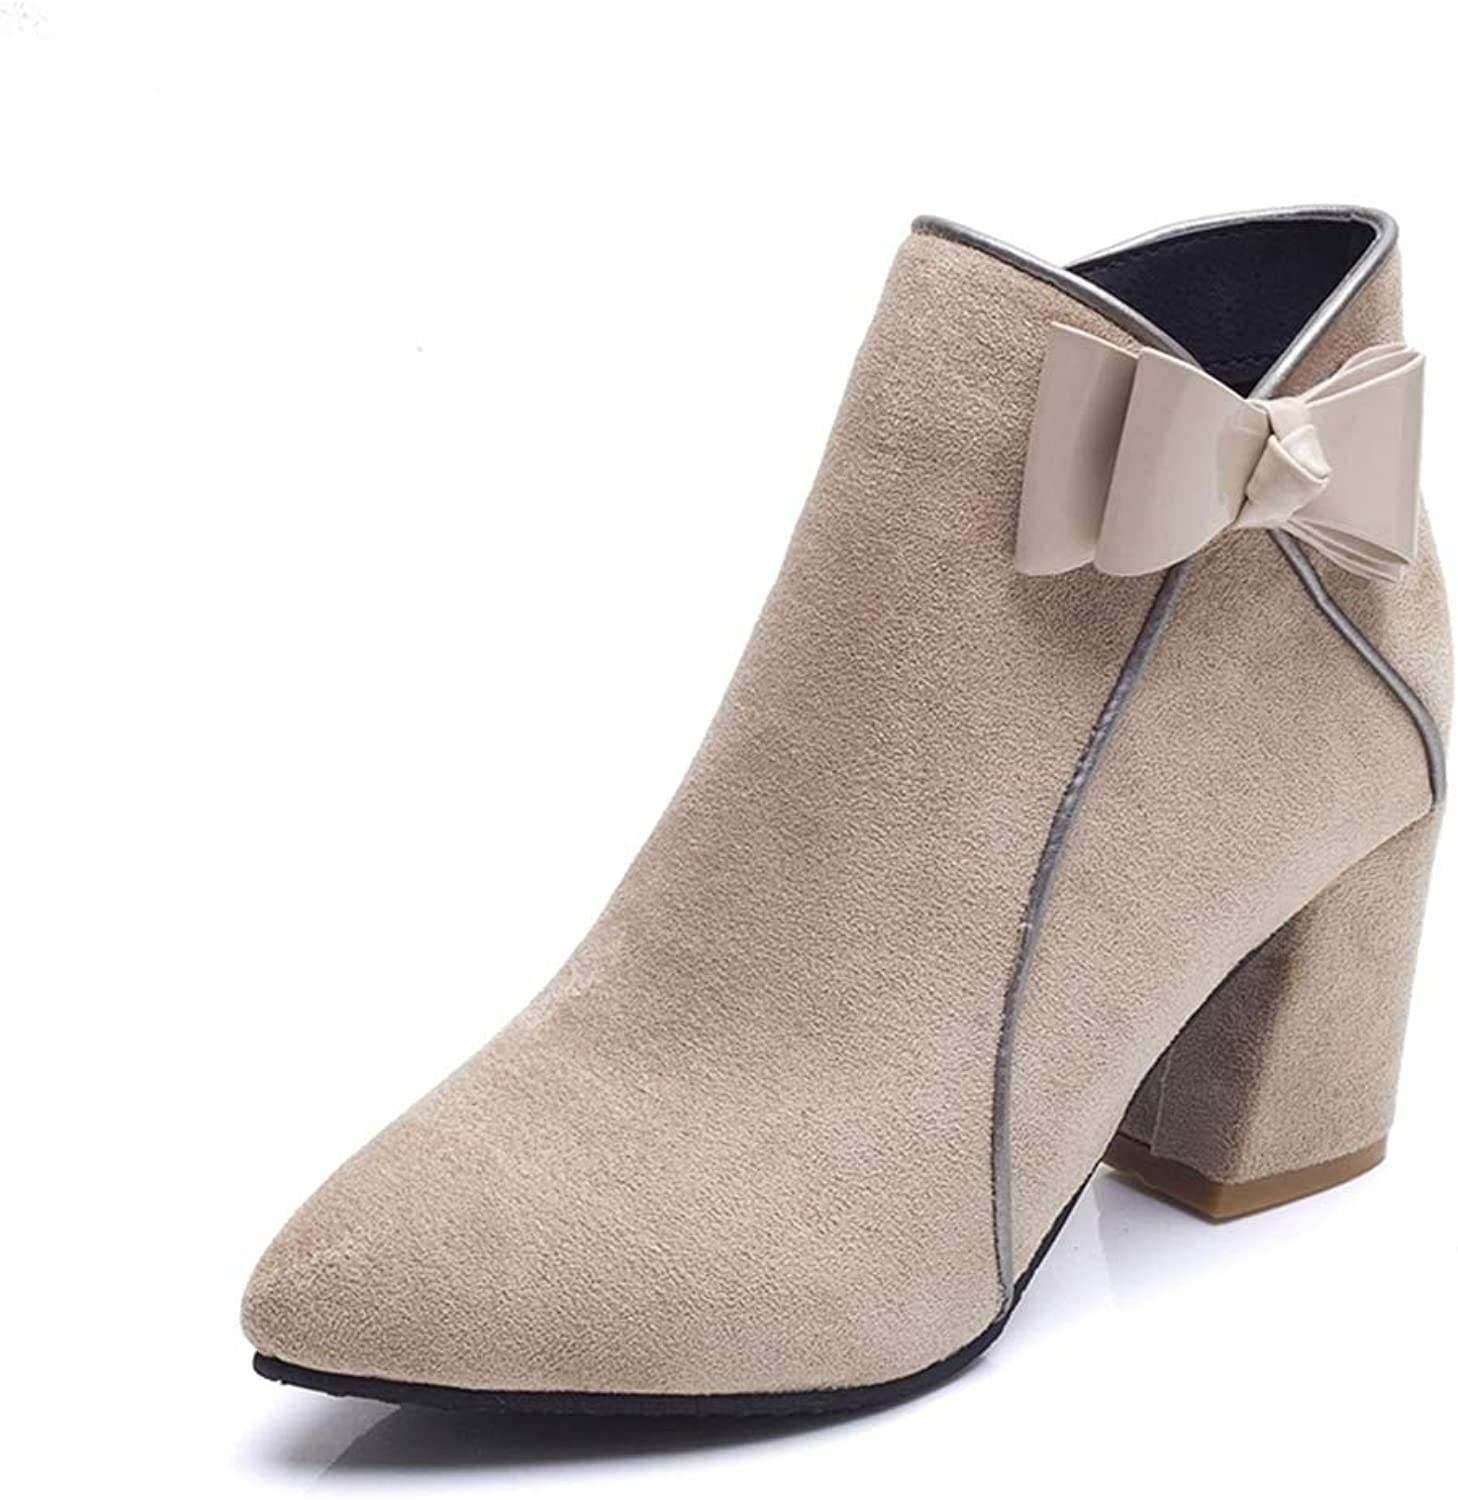 Woman Ankle Boots Bowknot Zipper High Square Heel Pointed Toe Fashion Faux Suede Sweet Ladies Winter Warm shoes